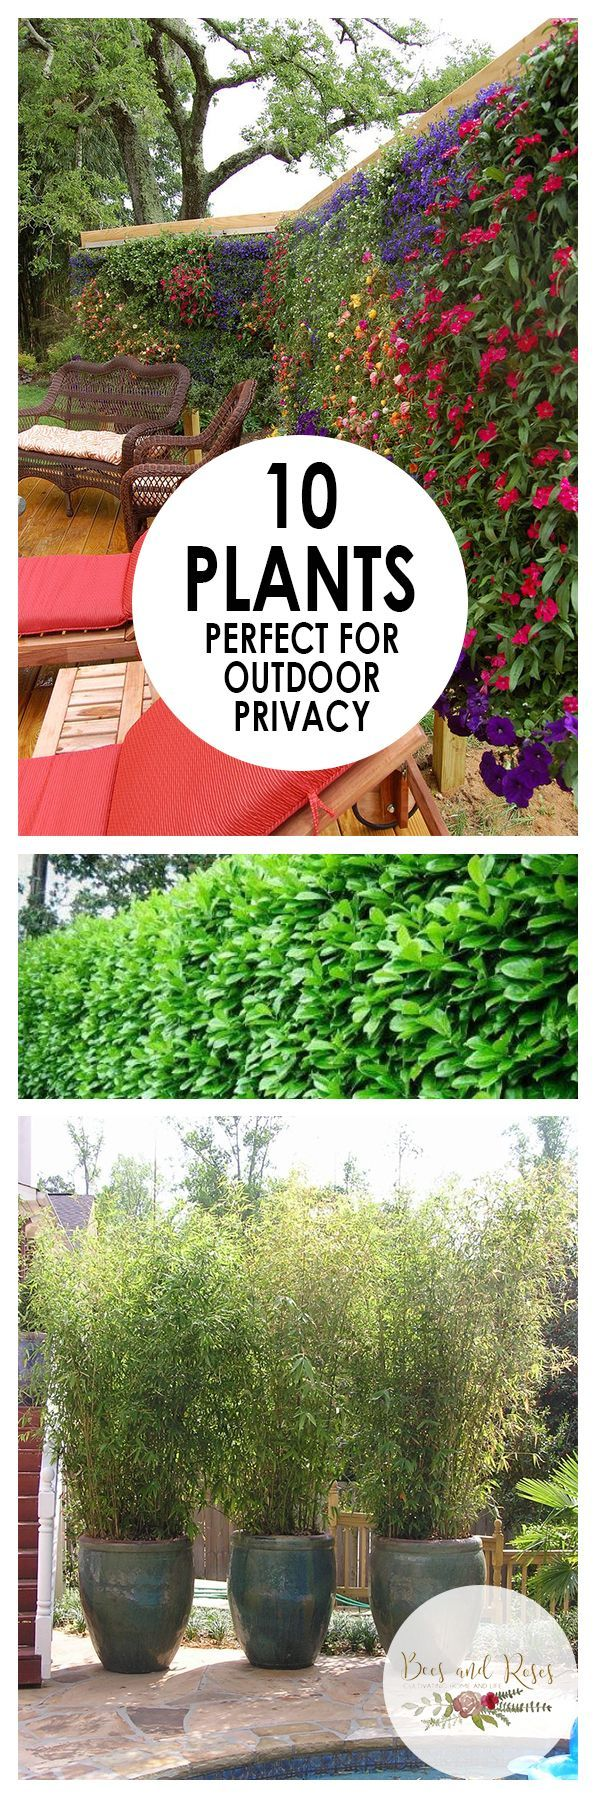 10 Plants Perfect For Outdoor Privacy